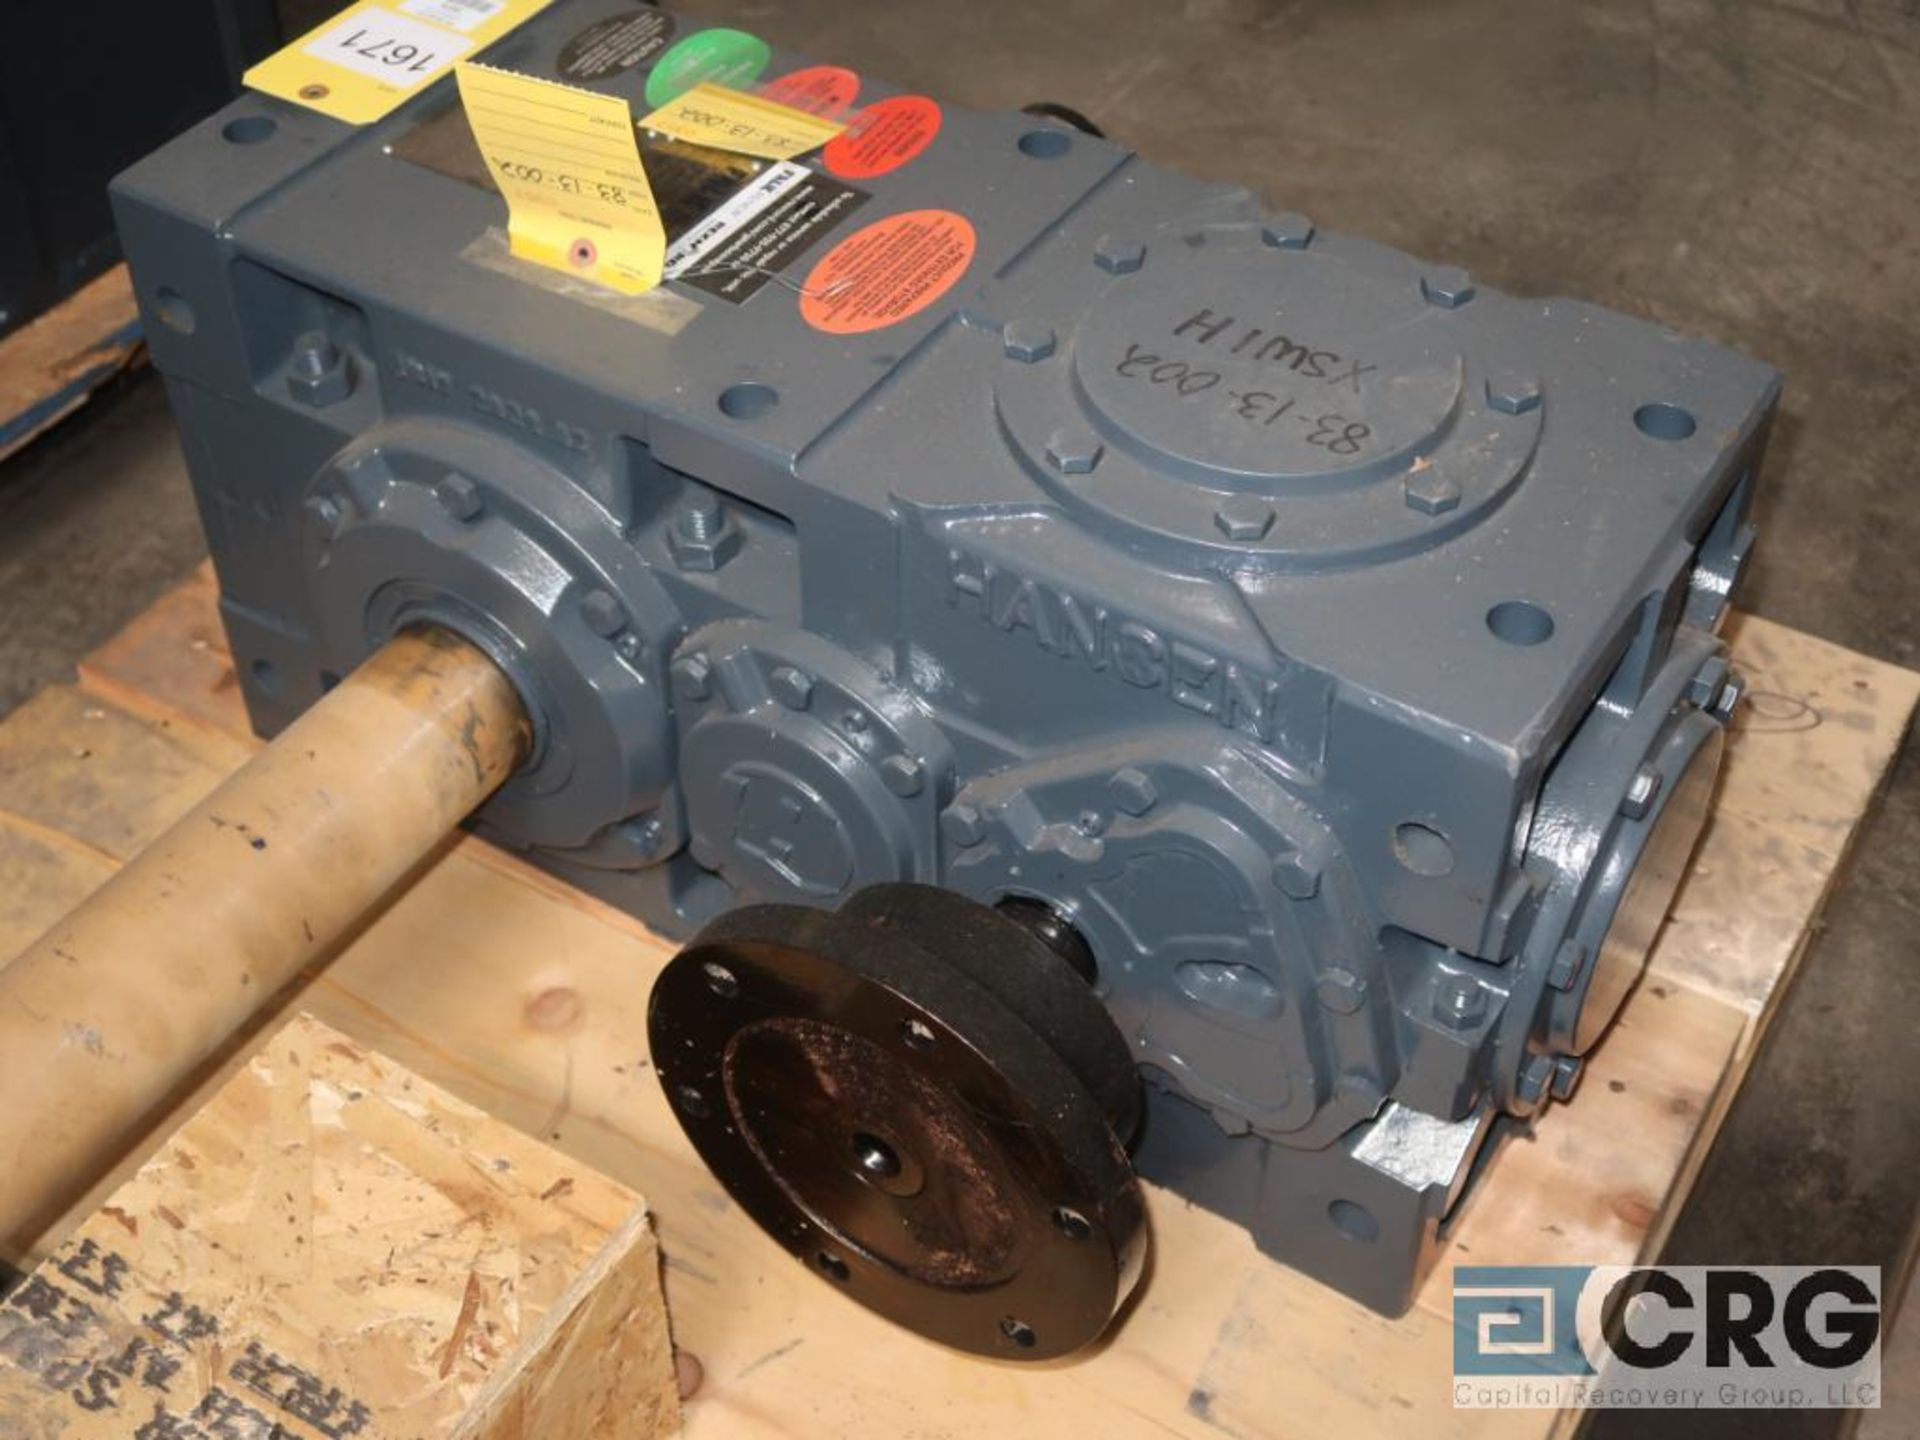 Falk/Hansen RD821S BND gear drive, ratio-1.875, RPM 1,790/143/954, service rate HP. 125 (Next Bay - Image 2 of 3